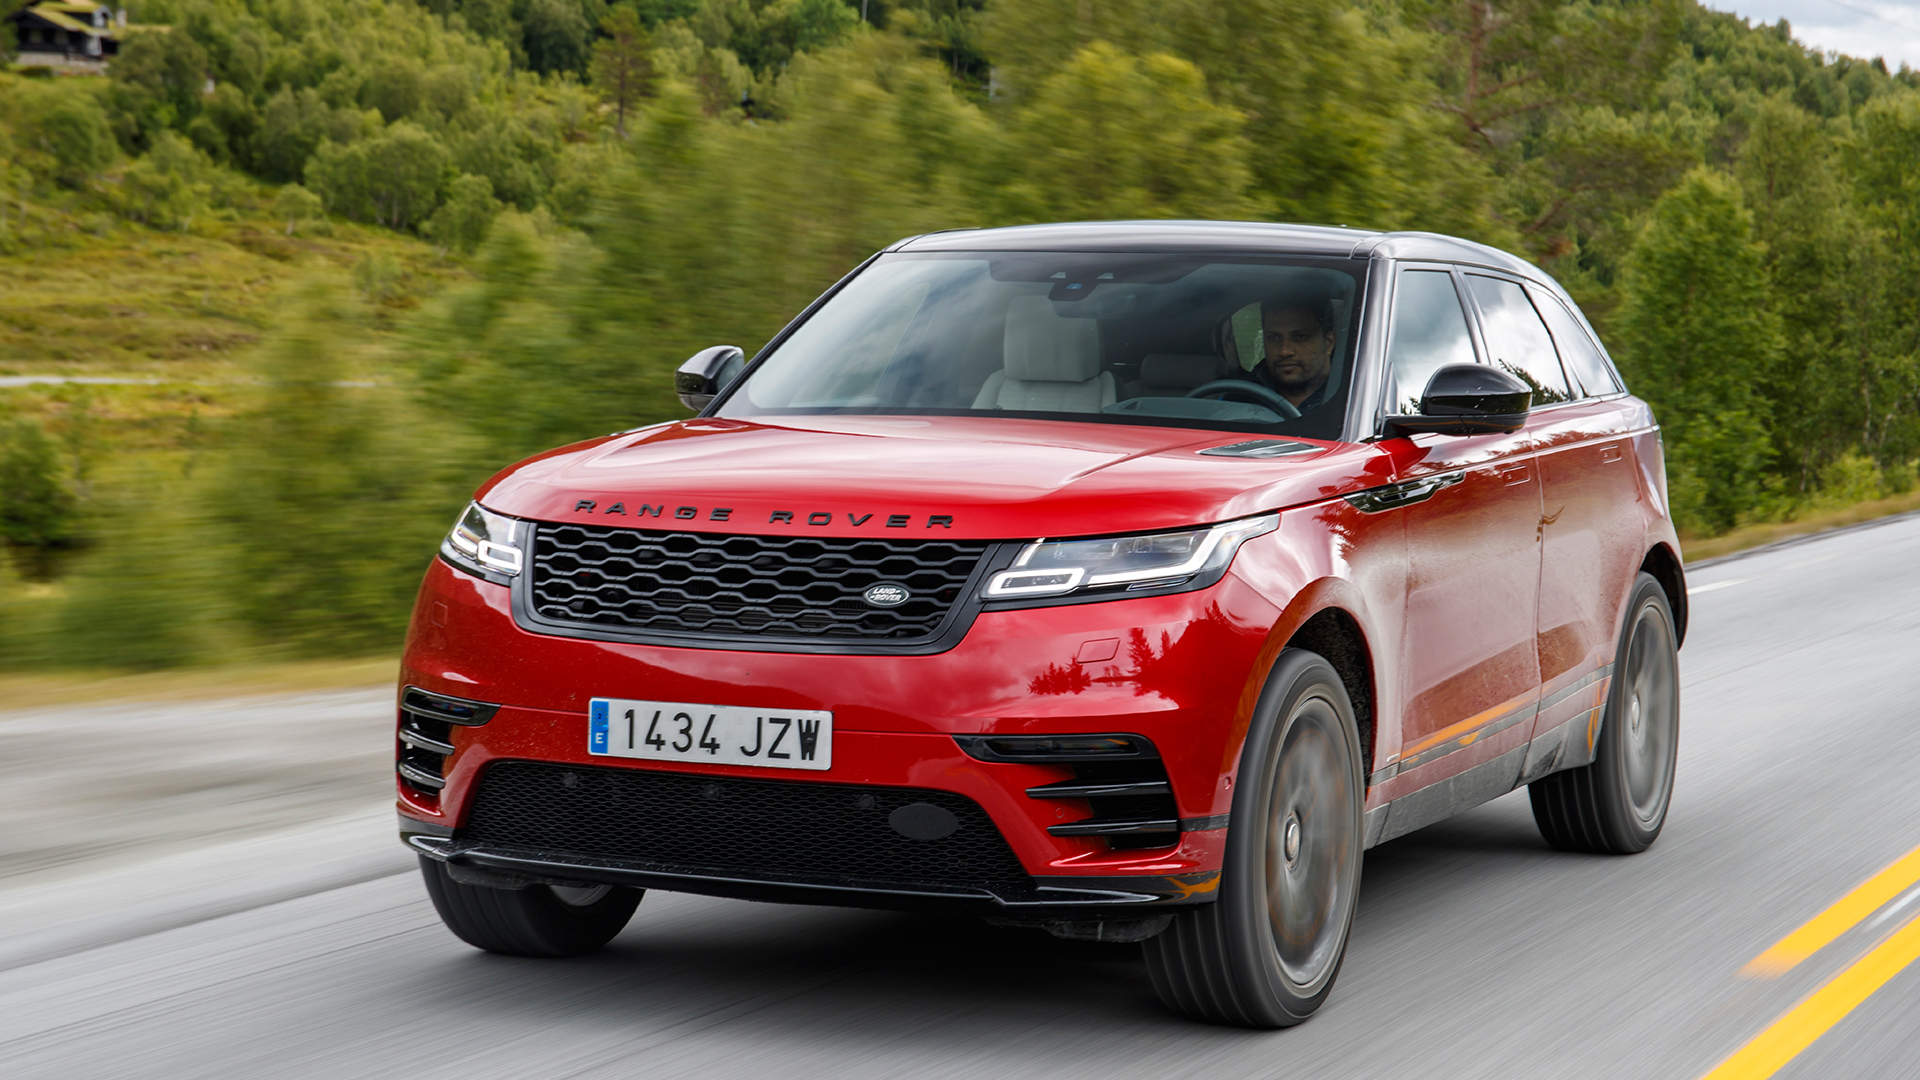 land rover range rover velar 2017 price mileage. Black Bedroom Furniture Sets. Home Design Ideas